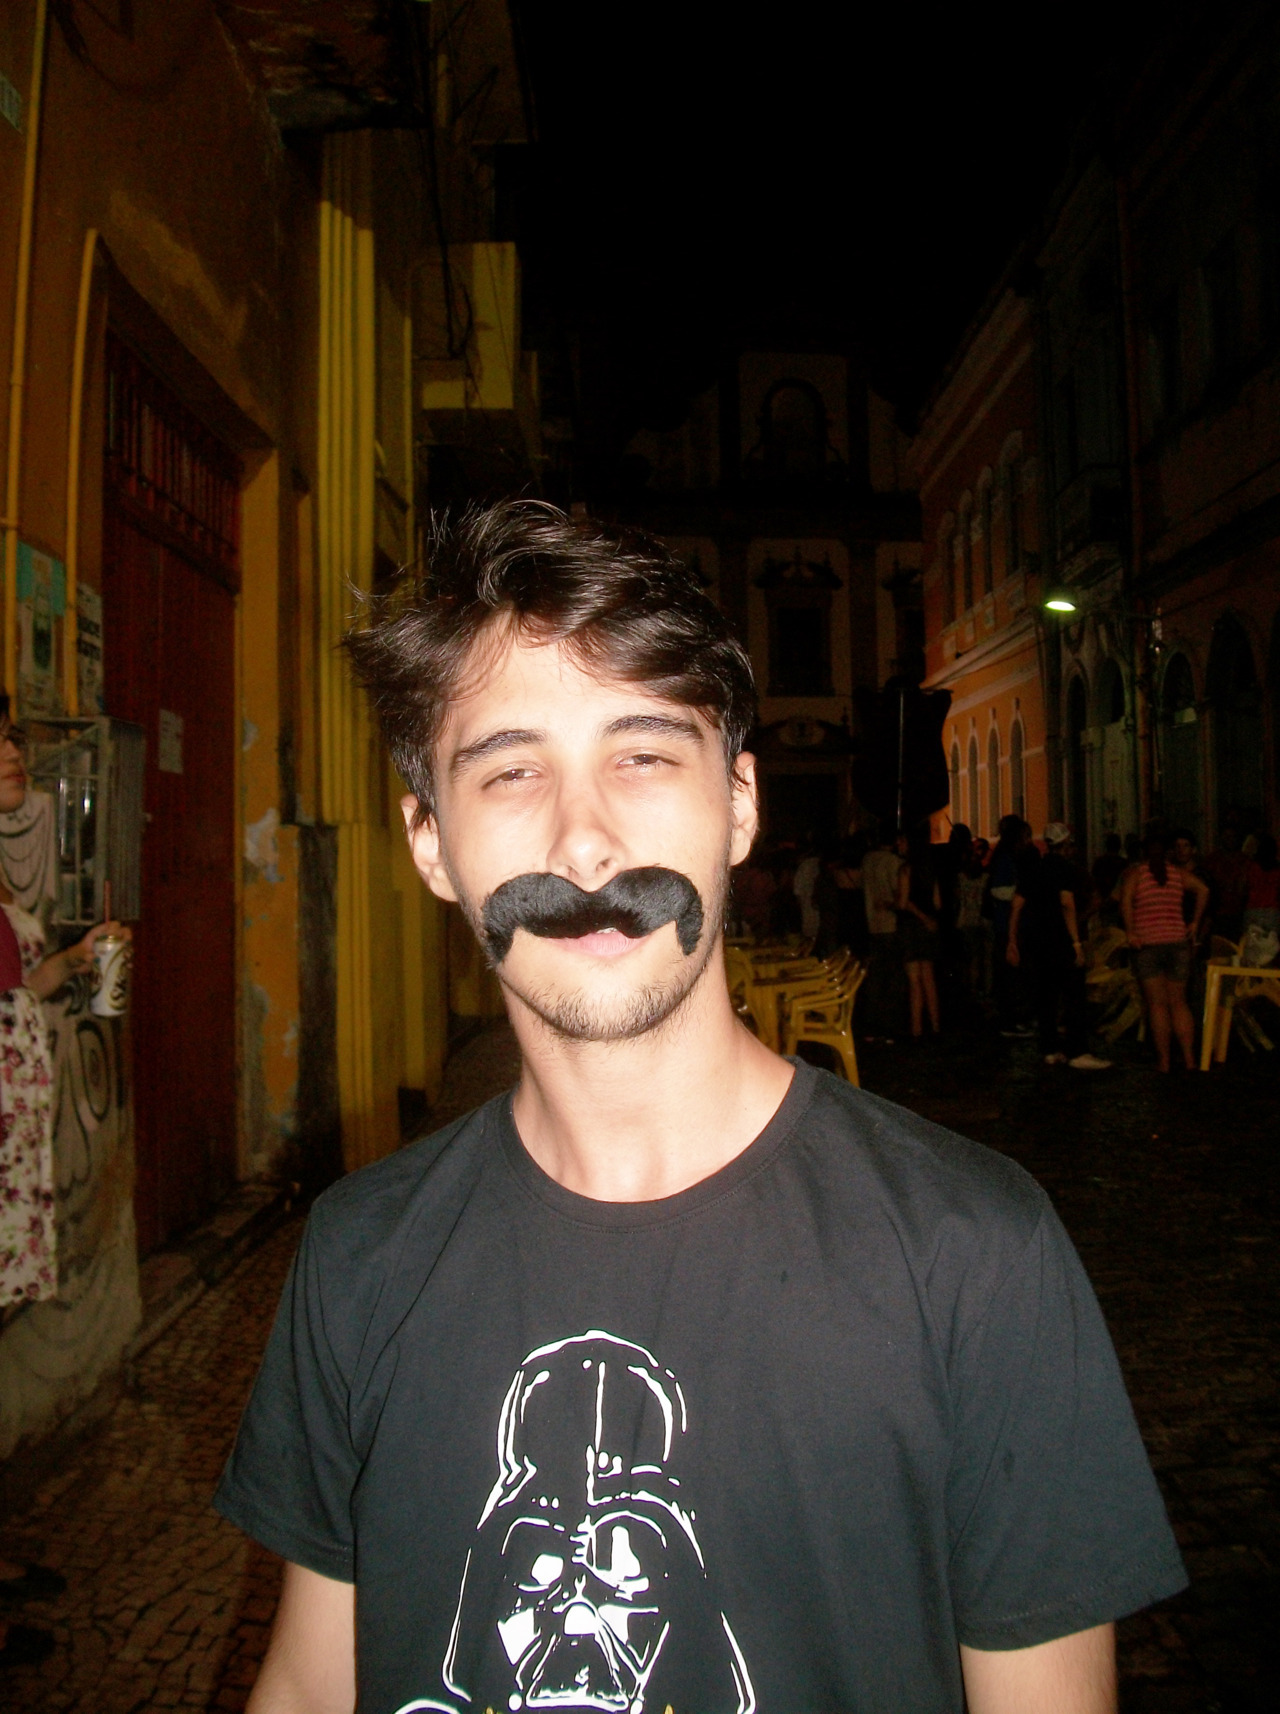 My fake mustache! In carnival on Brazil!